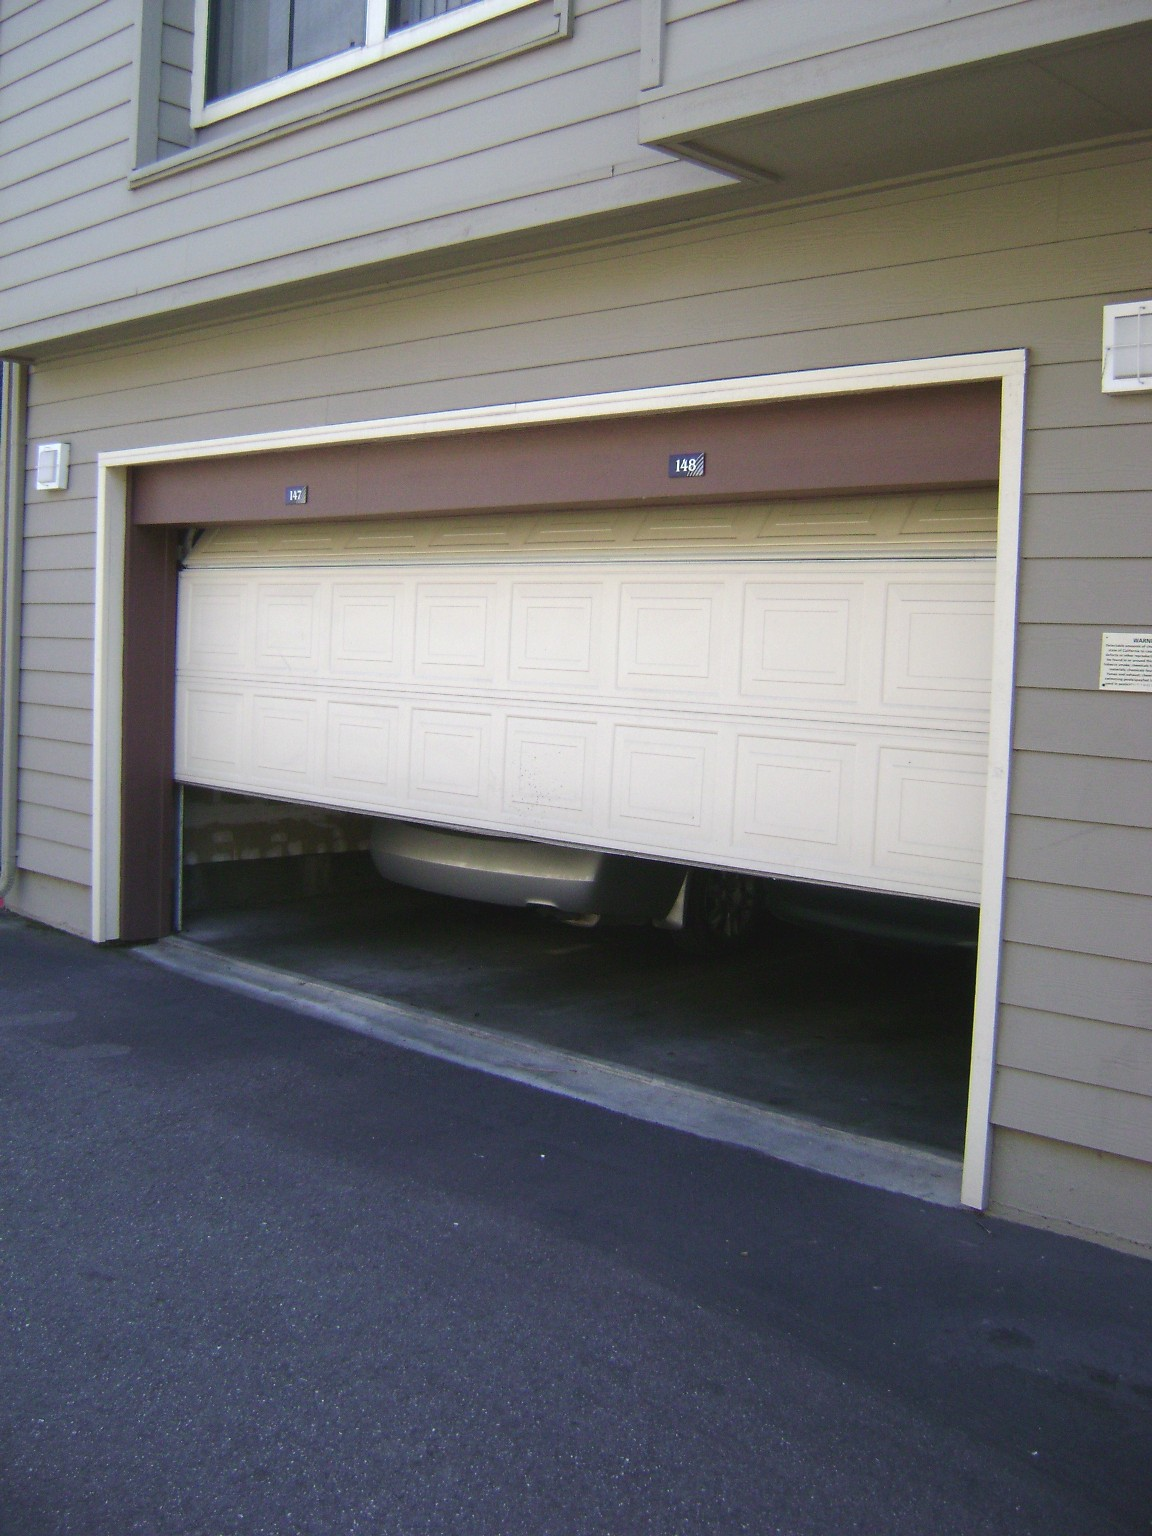 File Garage Door Sliding Up Jpg Wikimedia Commons